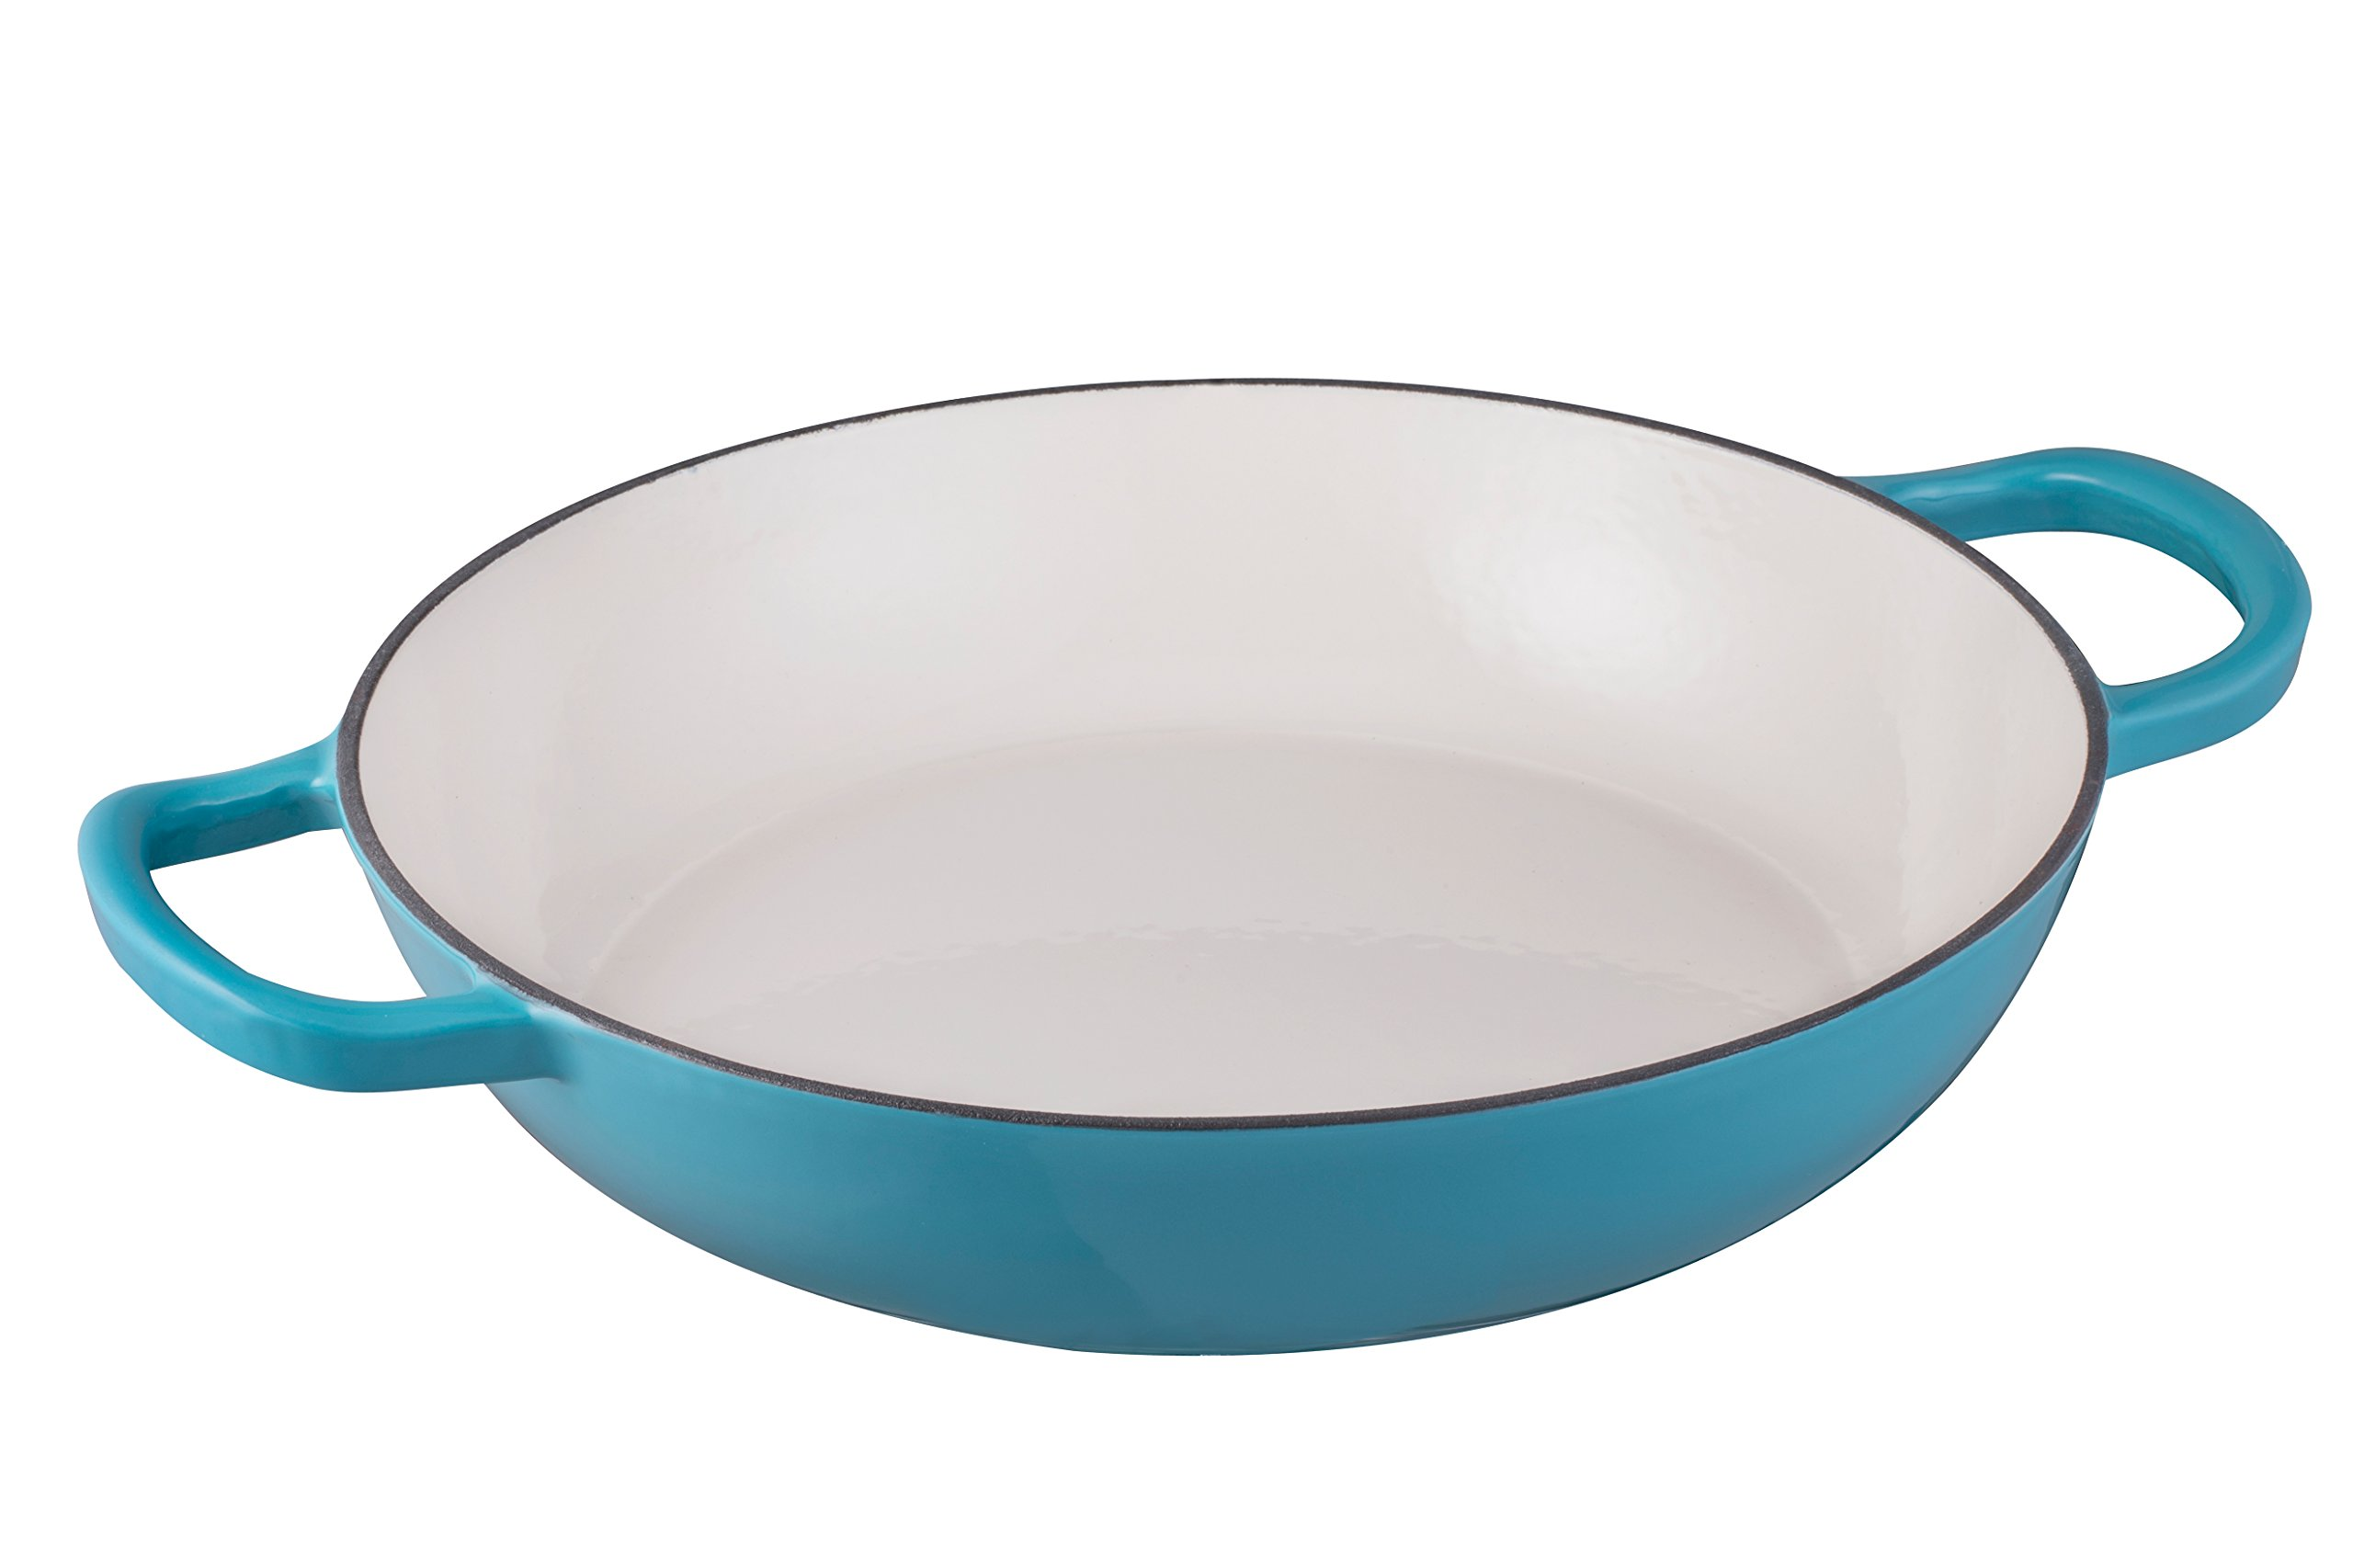 Enameled Cast Iron Shallow Casserole Braiser Pan with Cover, 3.8-Quart, Marine Blue by Bruntmor (Image #4)